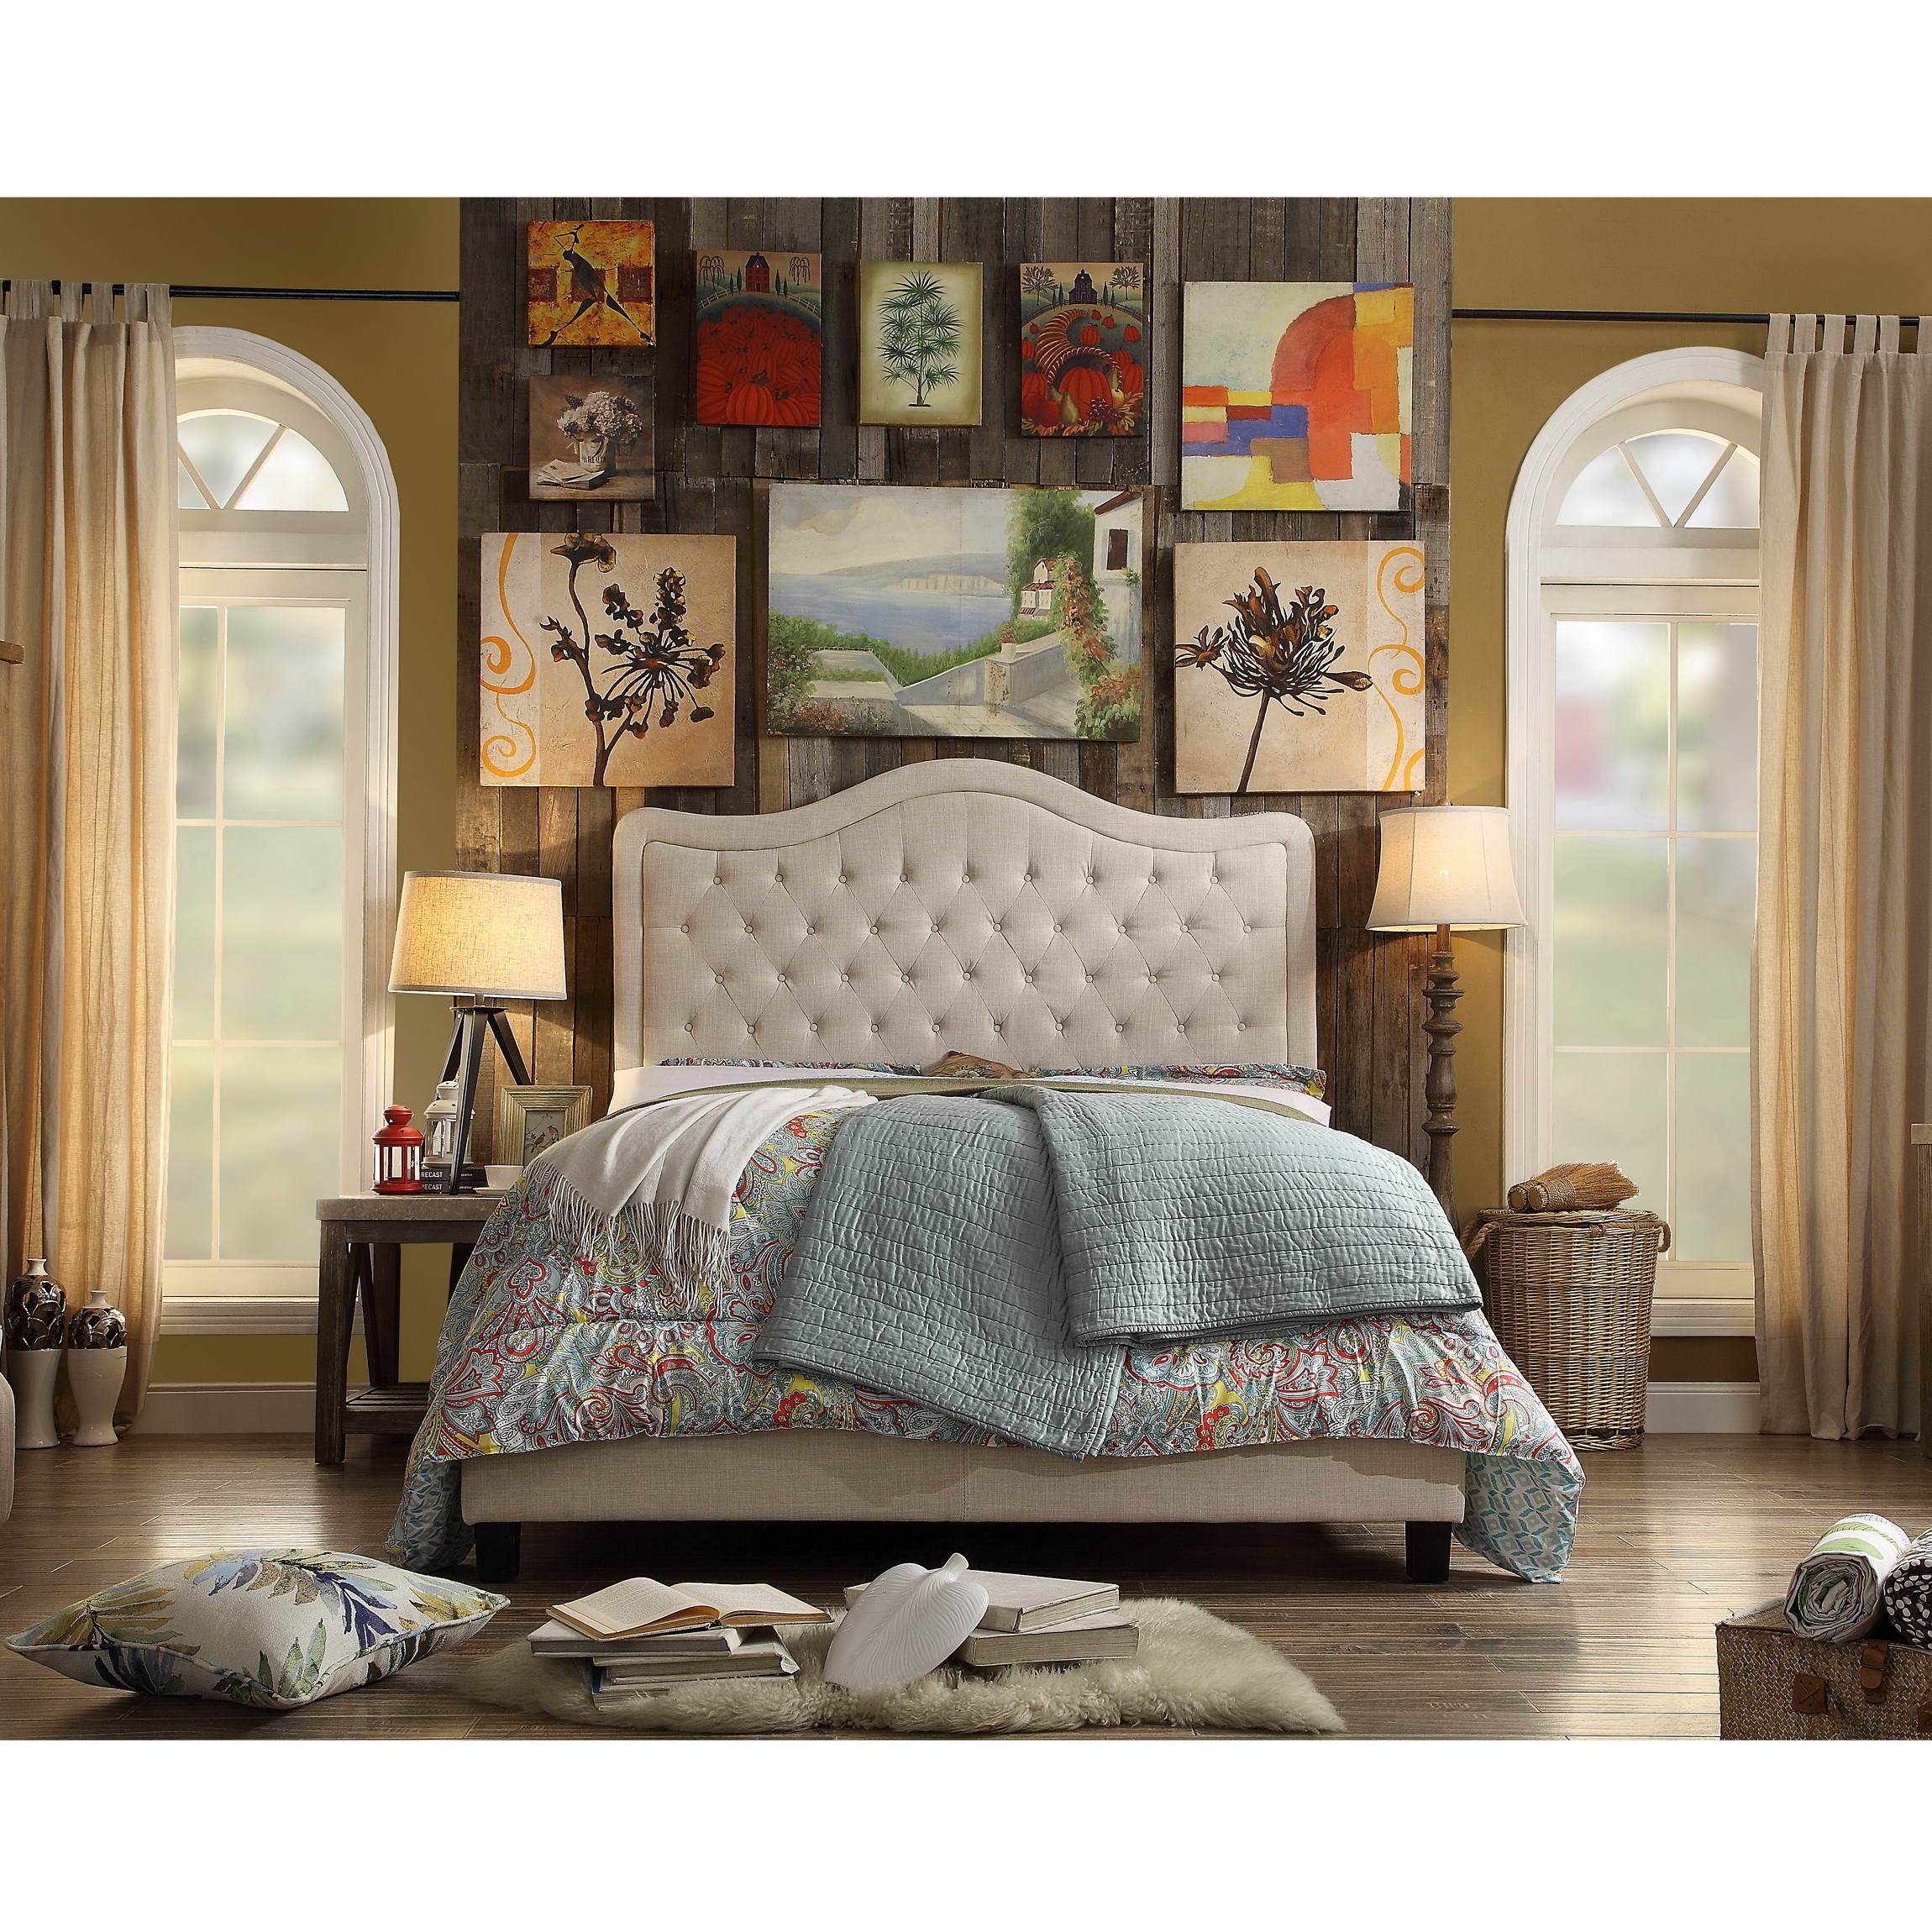 Alton Furniture Agnella King Upholstered Platform Bed, Beige by Fully Wind Co, Ltd.